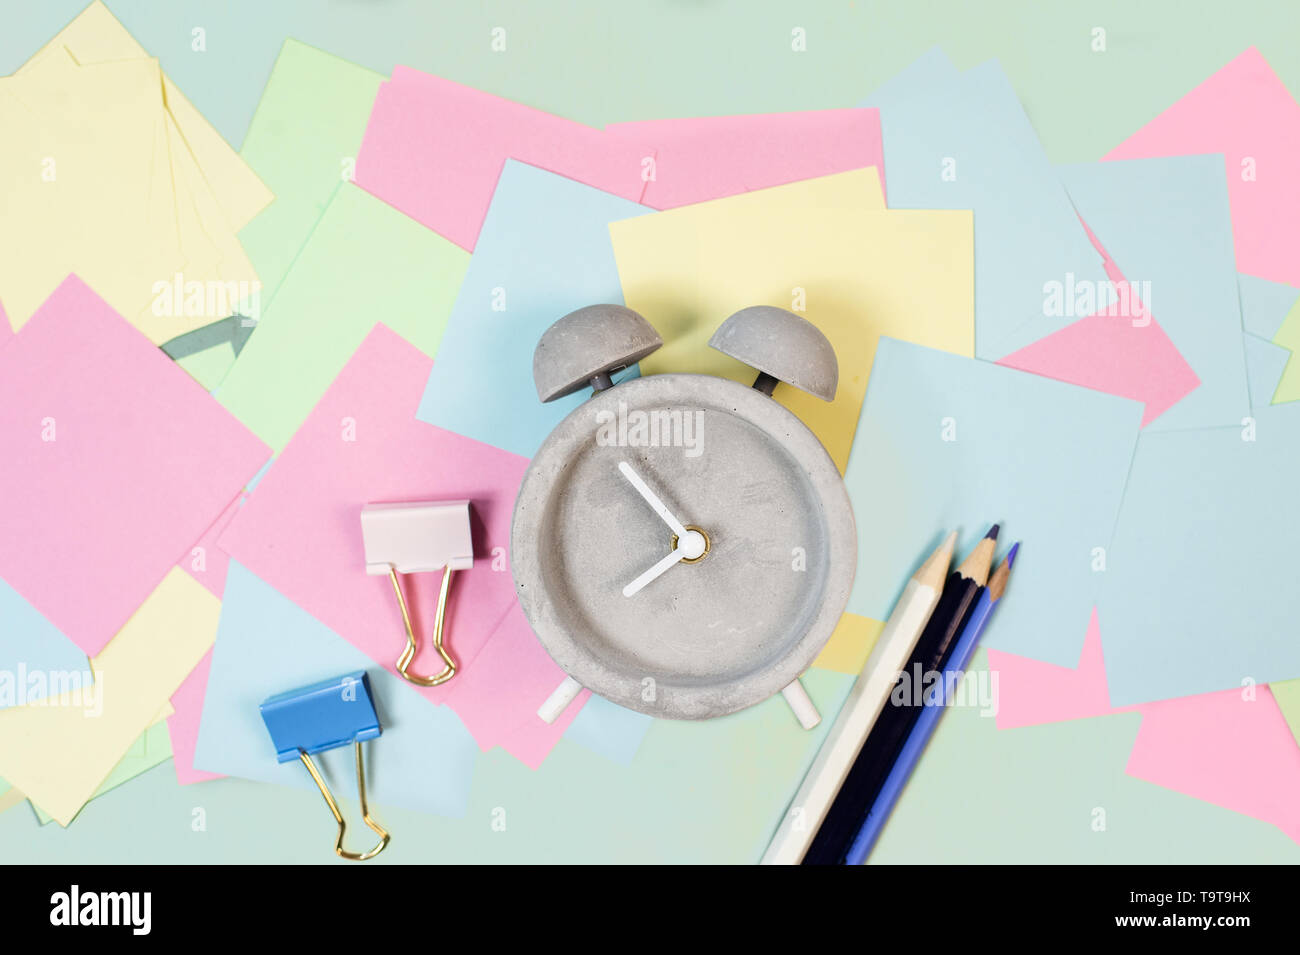 Back to school composition with vintage alarm clock - Stock Image